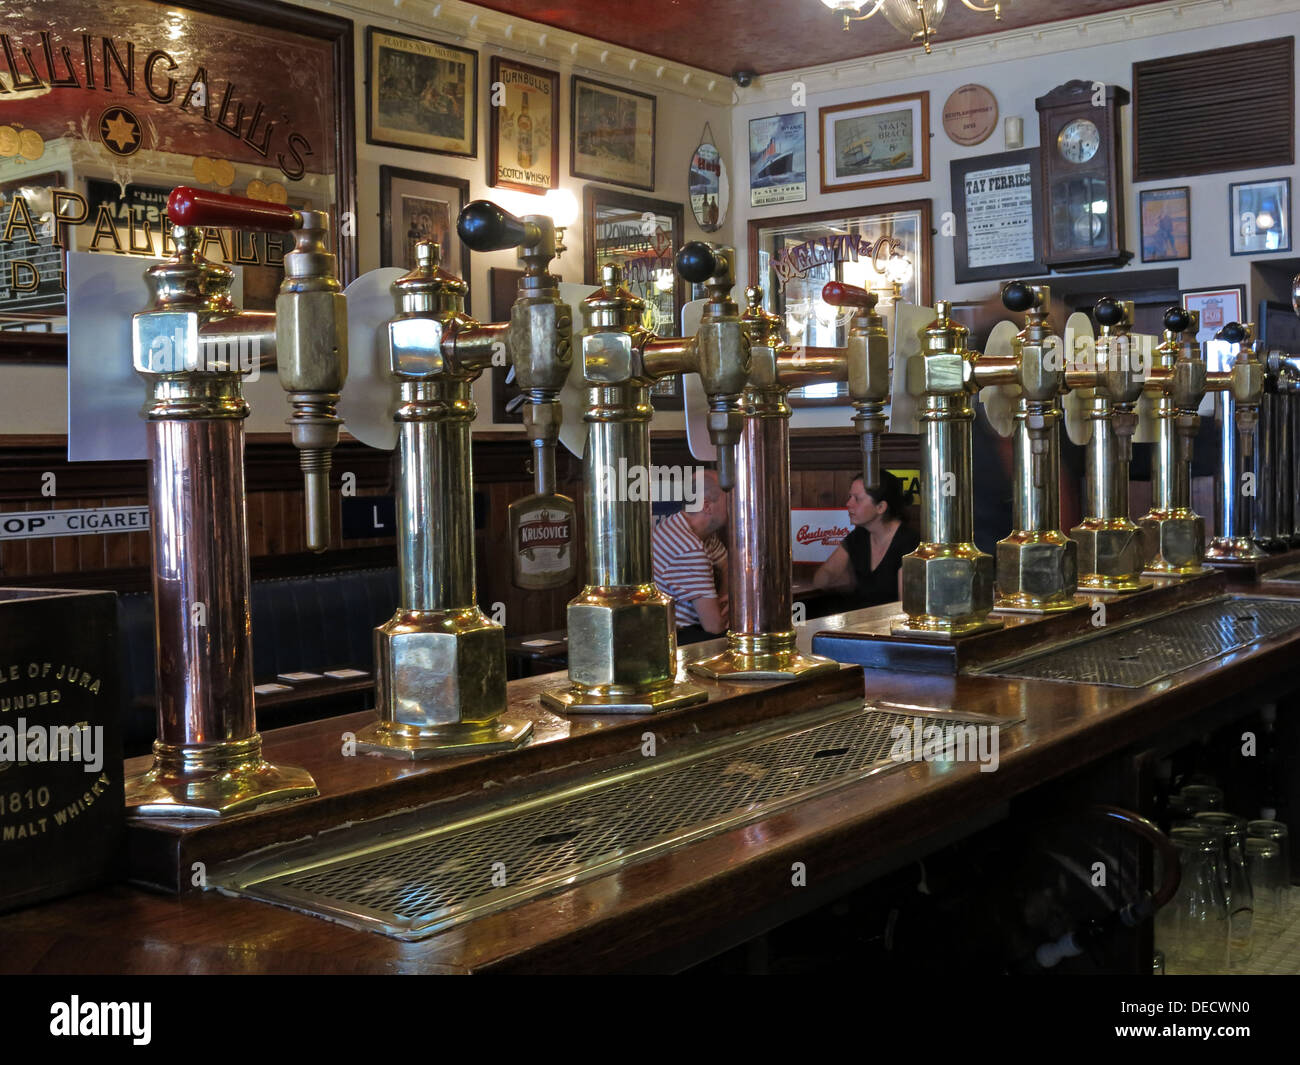 Street,old town,old,town,brass,tap,taps,drip tray,driptray,mirror,traditional,historic,famous,Traditional Ale pumps at the Bow Bar,Victoria Street,Edinburgh,Scotland,UK,bow,bar,Victoria,pump,pumps,beer tap,beer pump,gravity,CAMRA,GB,Great Britain,cask,beer,beers,cask beers,single malts,GoTonySmith,mirrors,single malt,oldtown,Buy Pictures of,Buy Images Of,Scotlands History,Scotlands History